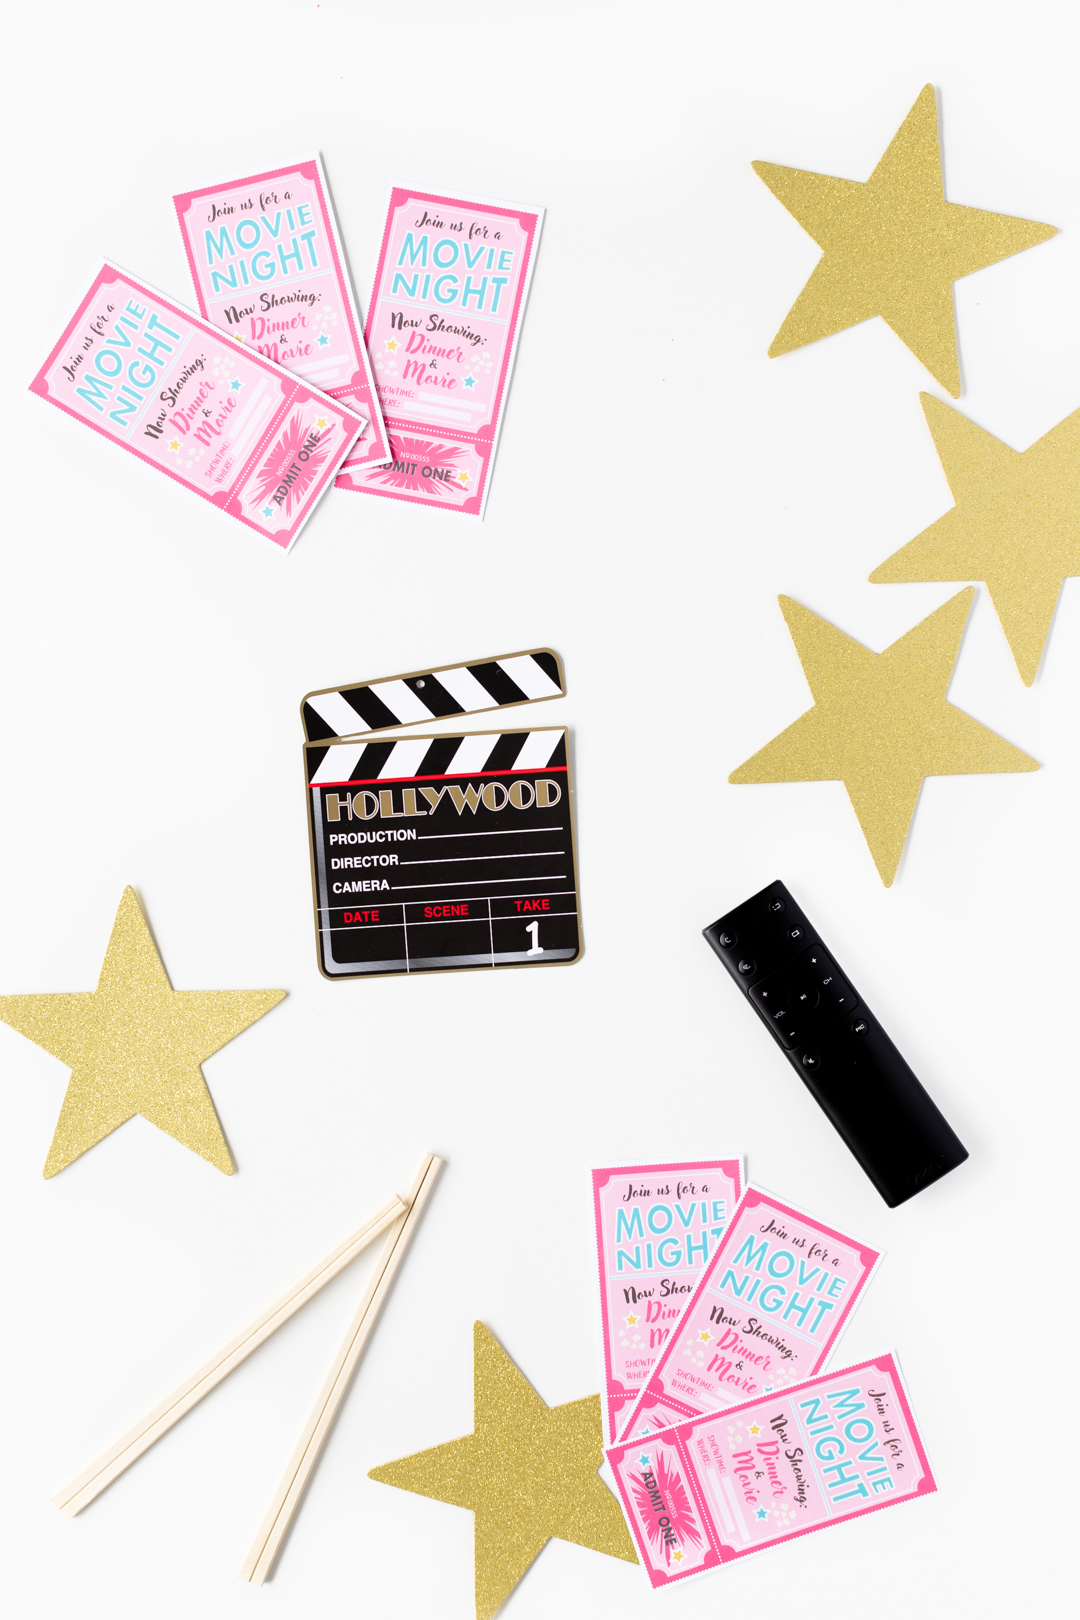 Movie night party decorations. Gold Stars, Movie Night Invitations.